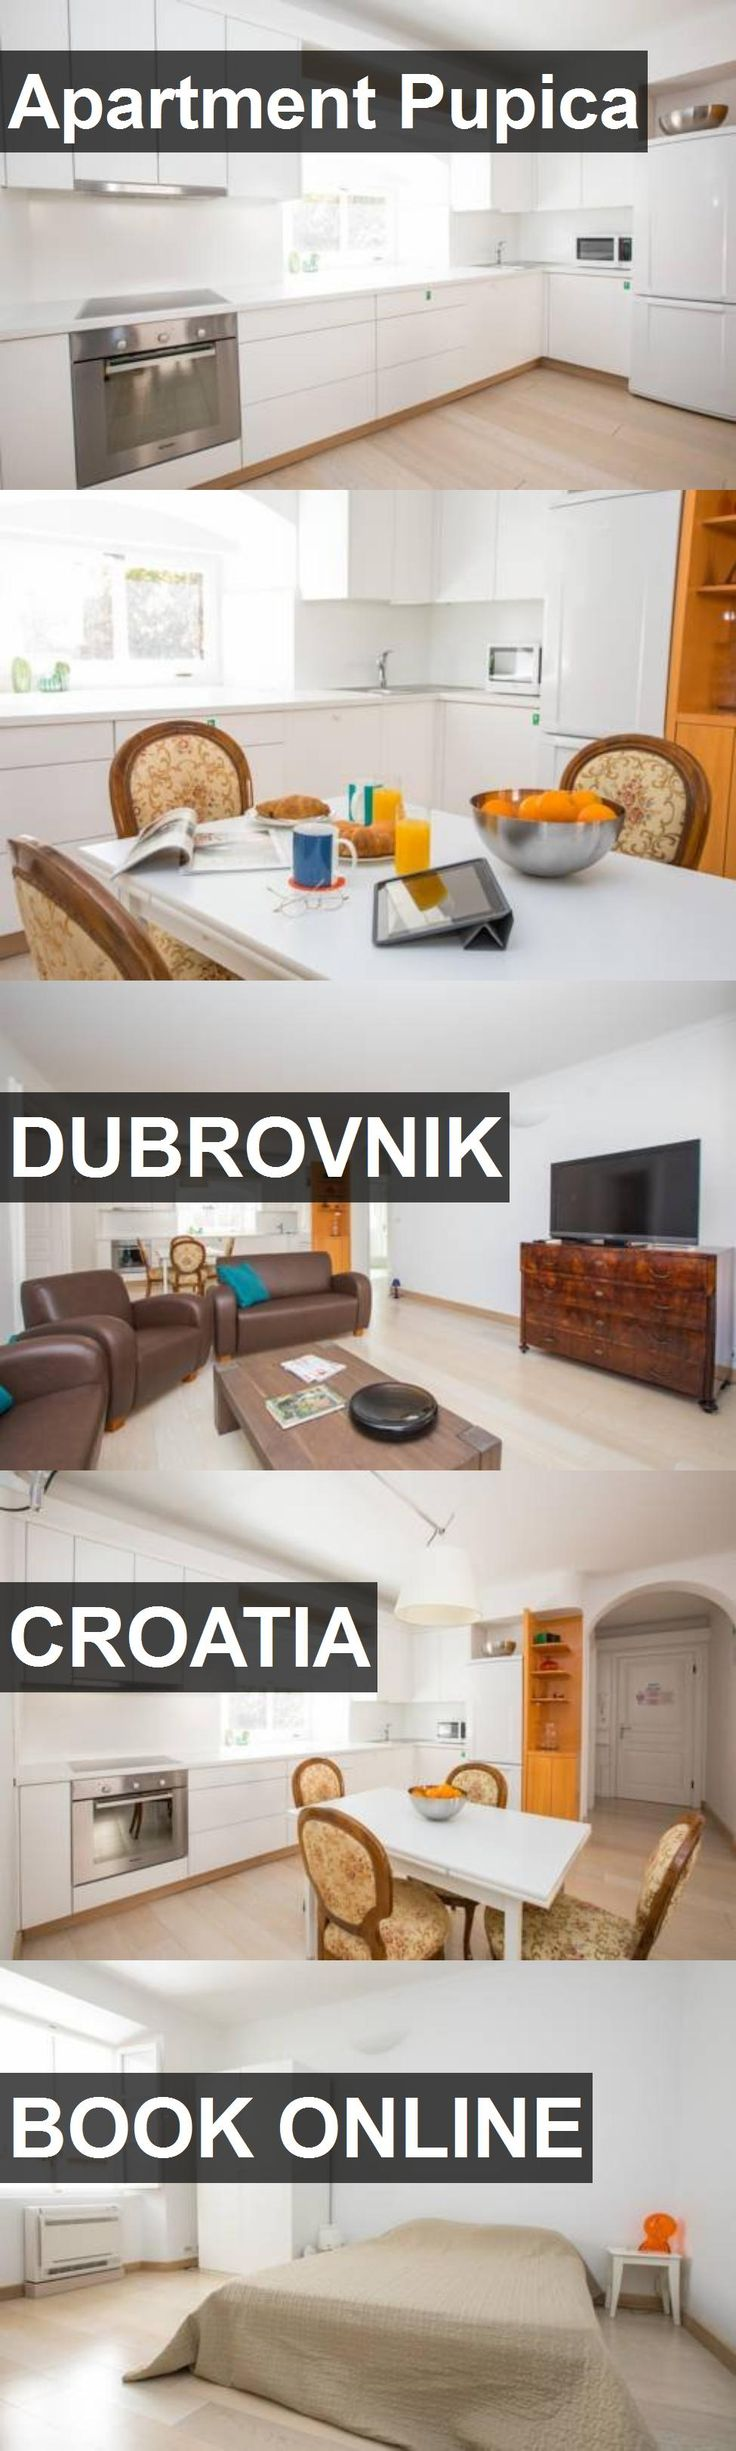 Hotel Apartment Pupica in Dubrovnik, Croatia. For more information, photos, reviews and best prices please follow the link. #Croatia #Dubrovnik #ApartmentPupica #hotel #travel #vacation